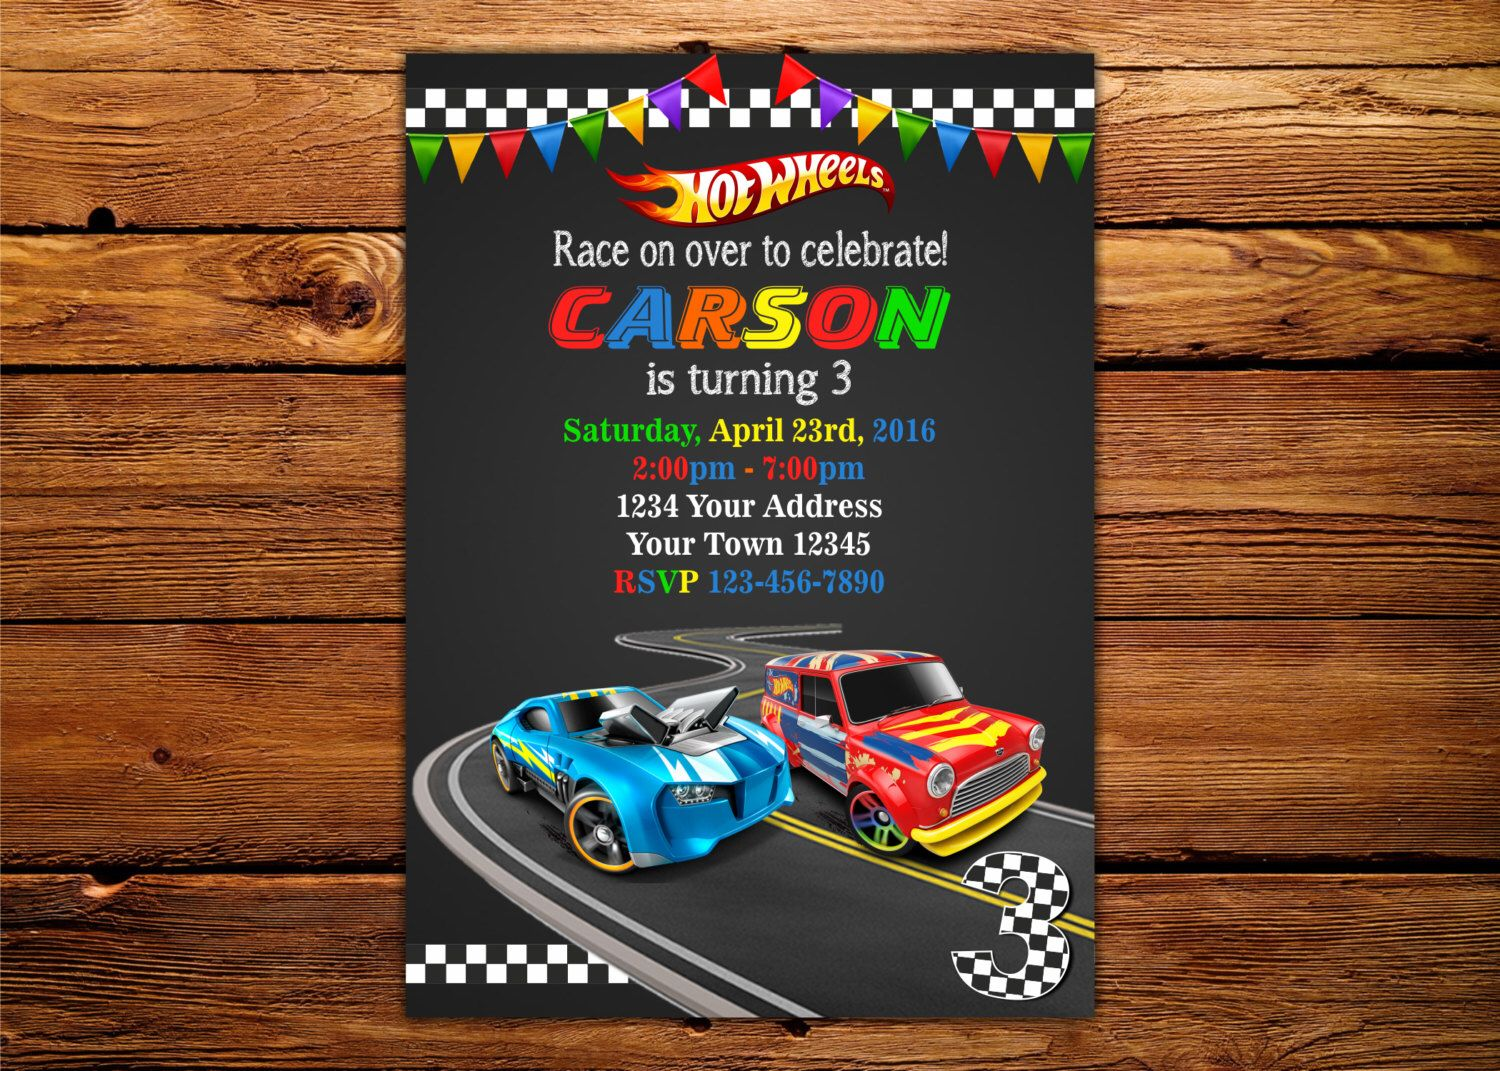 Hot Wheels invitation, Cars Invitation, Hot Wheels birthday invitation, racing birthday Invitation, track, cars, hotwheels, vert, racer /C1 by DigitalSentiments on Etsy https://www.etsy.com/listing/265198286/hot-wheels-invitation-cars-invitation